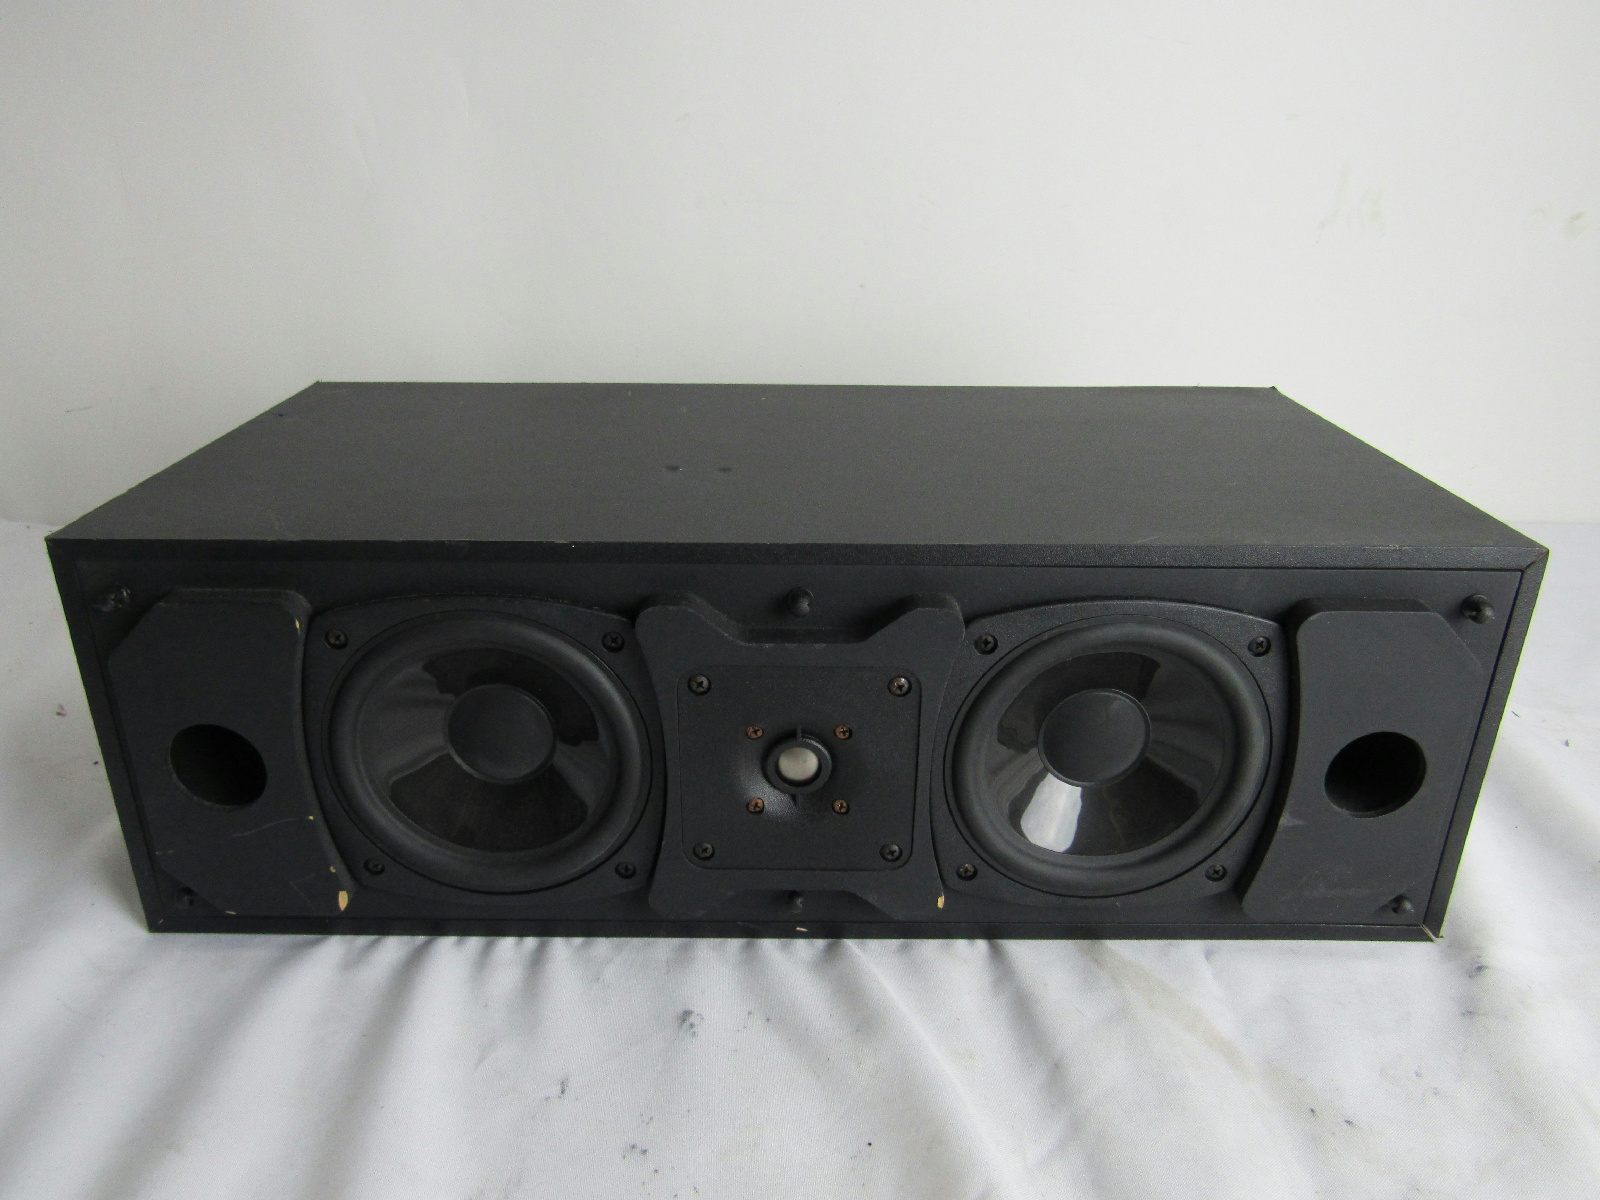 mirage omni s8 subwoofer manual